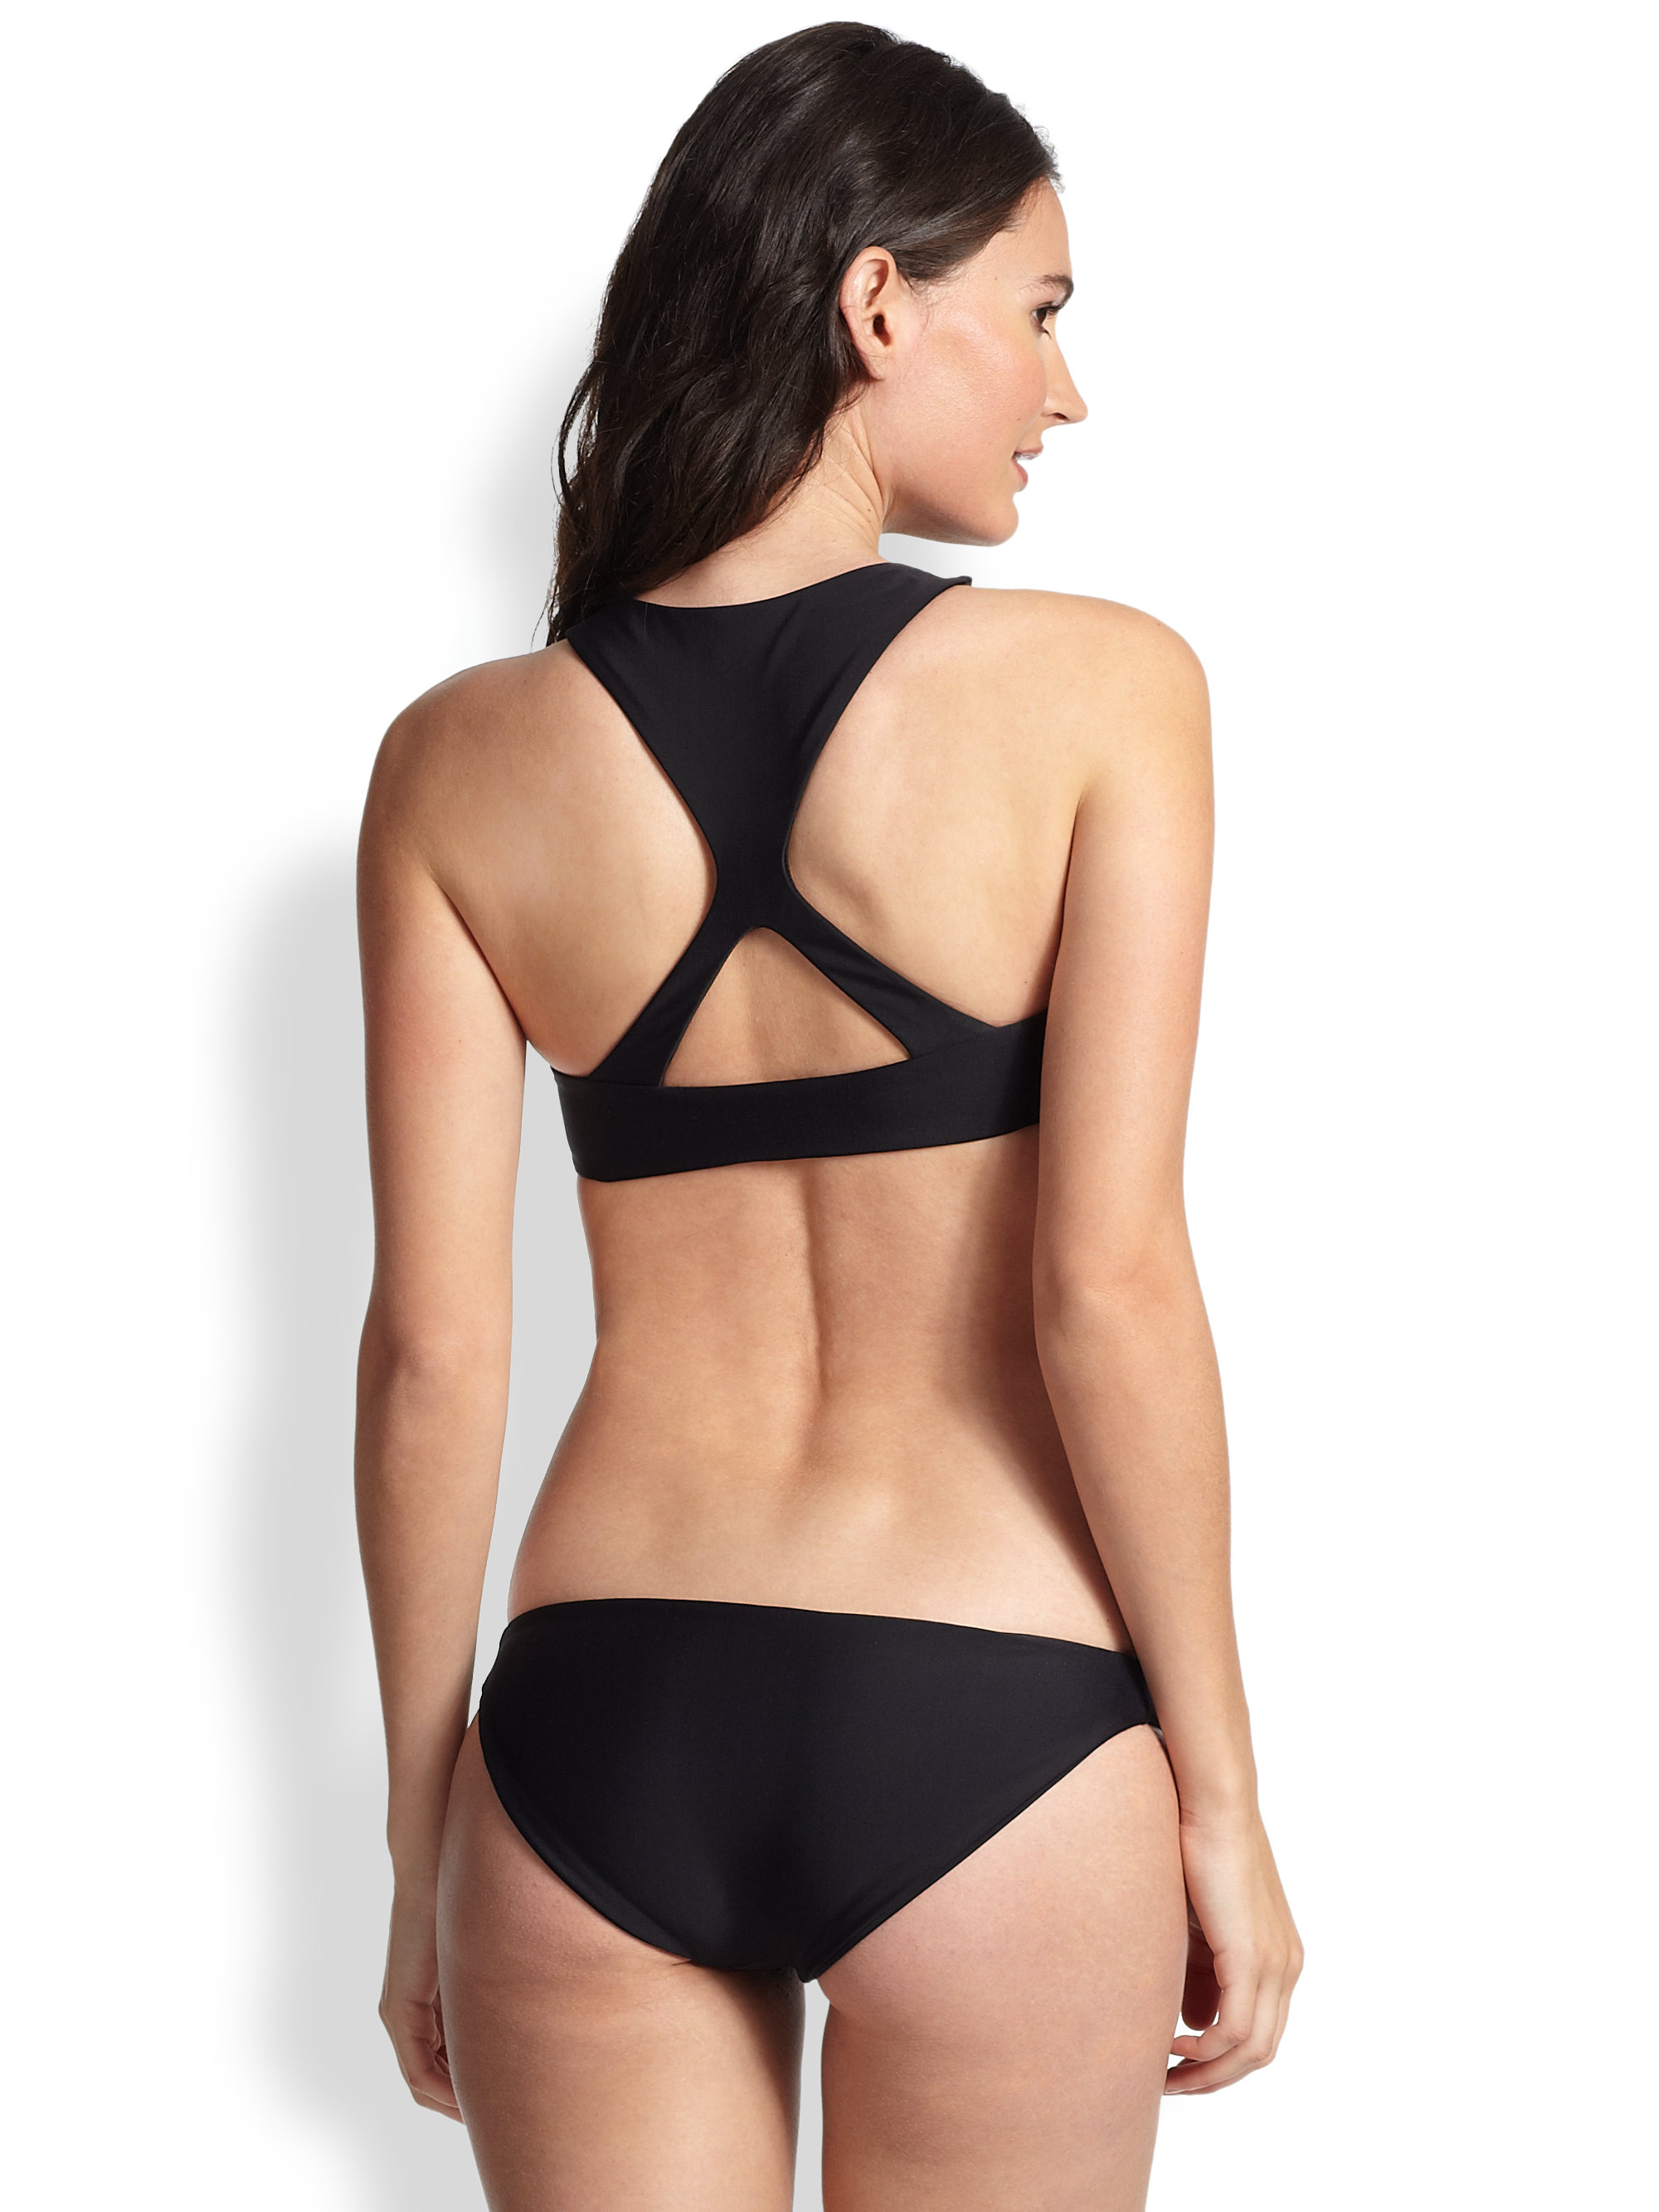 The Joan Smalls Cut-Out Racerback Bikini Top is a sporty silhouette. It's built up triangle cups and removable pads will keep you stylish and supported. The best part is the back, featuring an open keyhole racerback with a trendy tie closure.